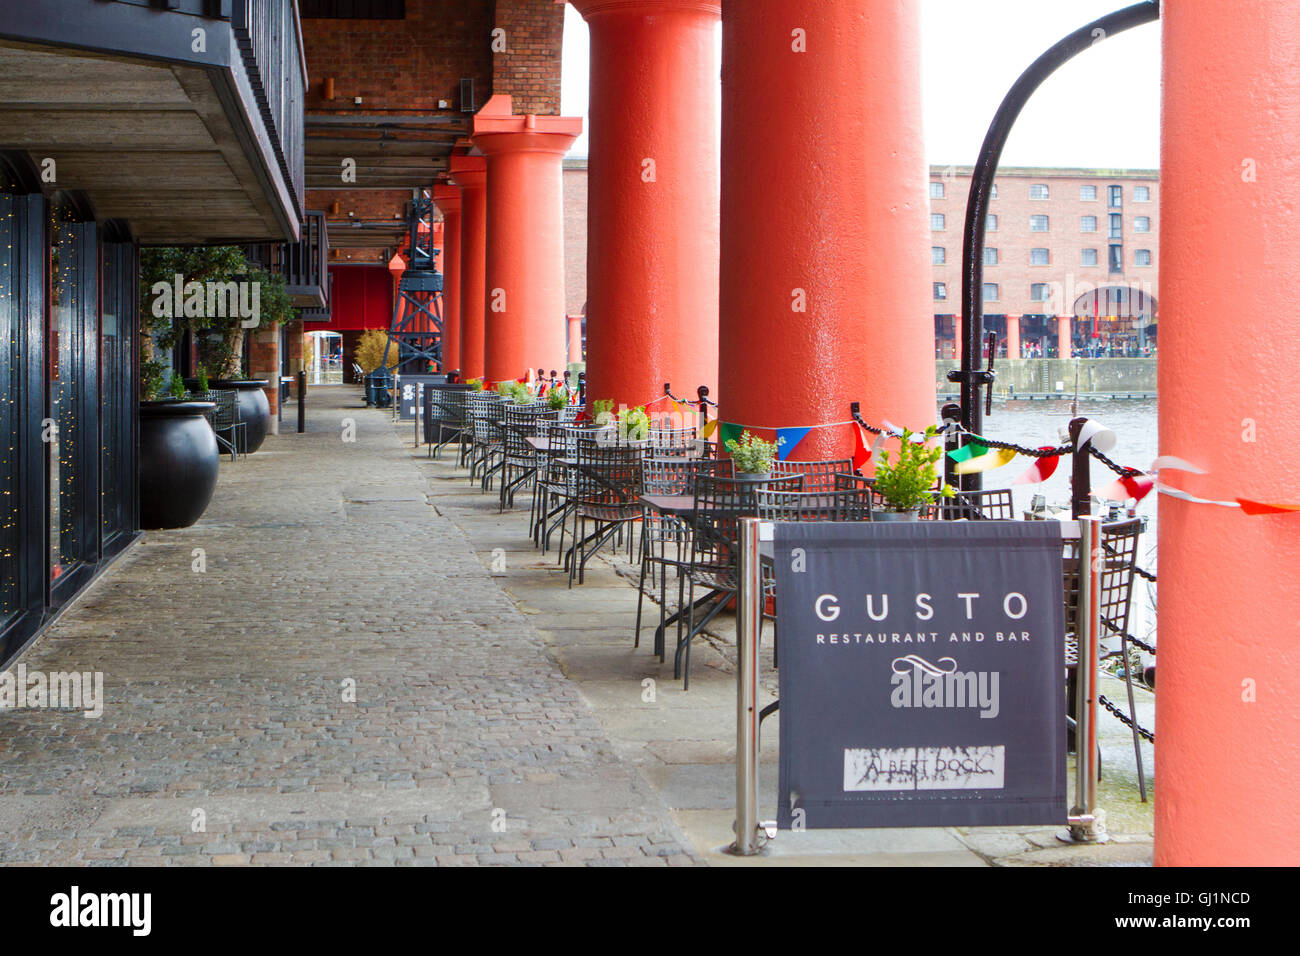 The 'Gusto' upmarket restaurant and bar on the inner square of the famous Albert Dock complex, Liverpool, - Stock Image